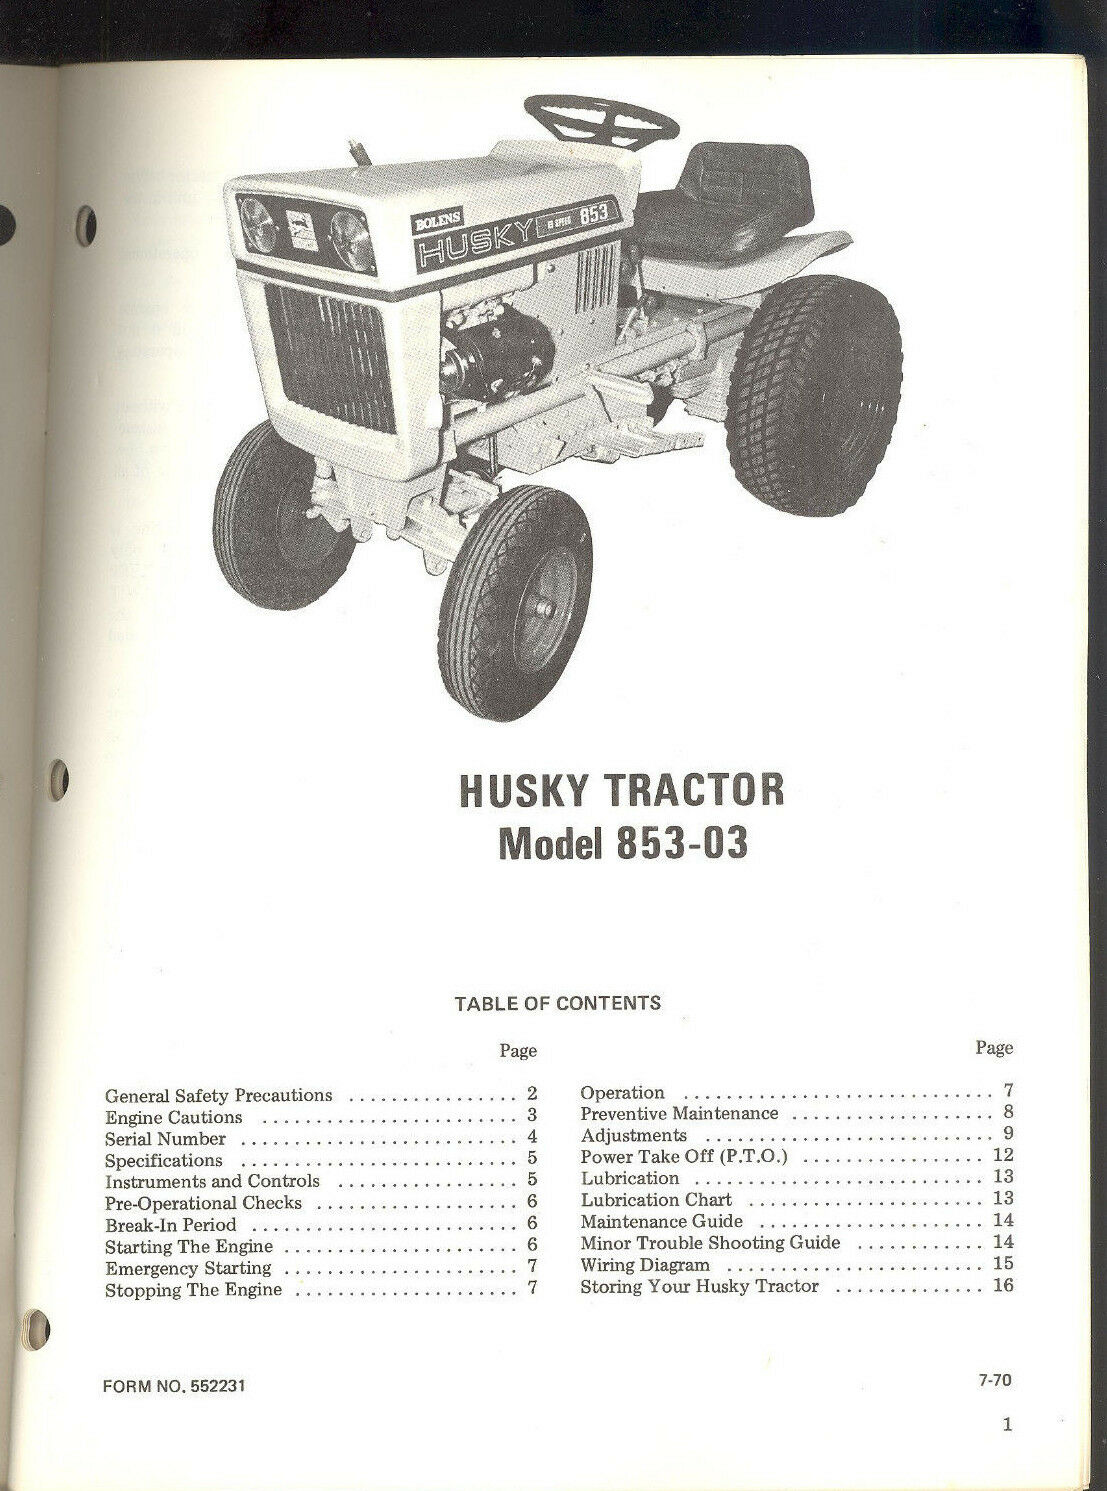 wiring diagram bolens 1220 wiring library 1 of 3 1970 bolens husky tractor model 853 03 owners operators maintenance manual